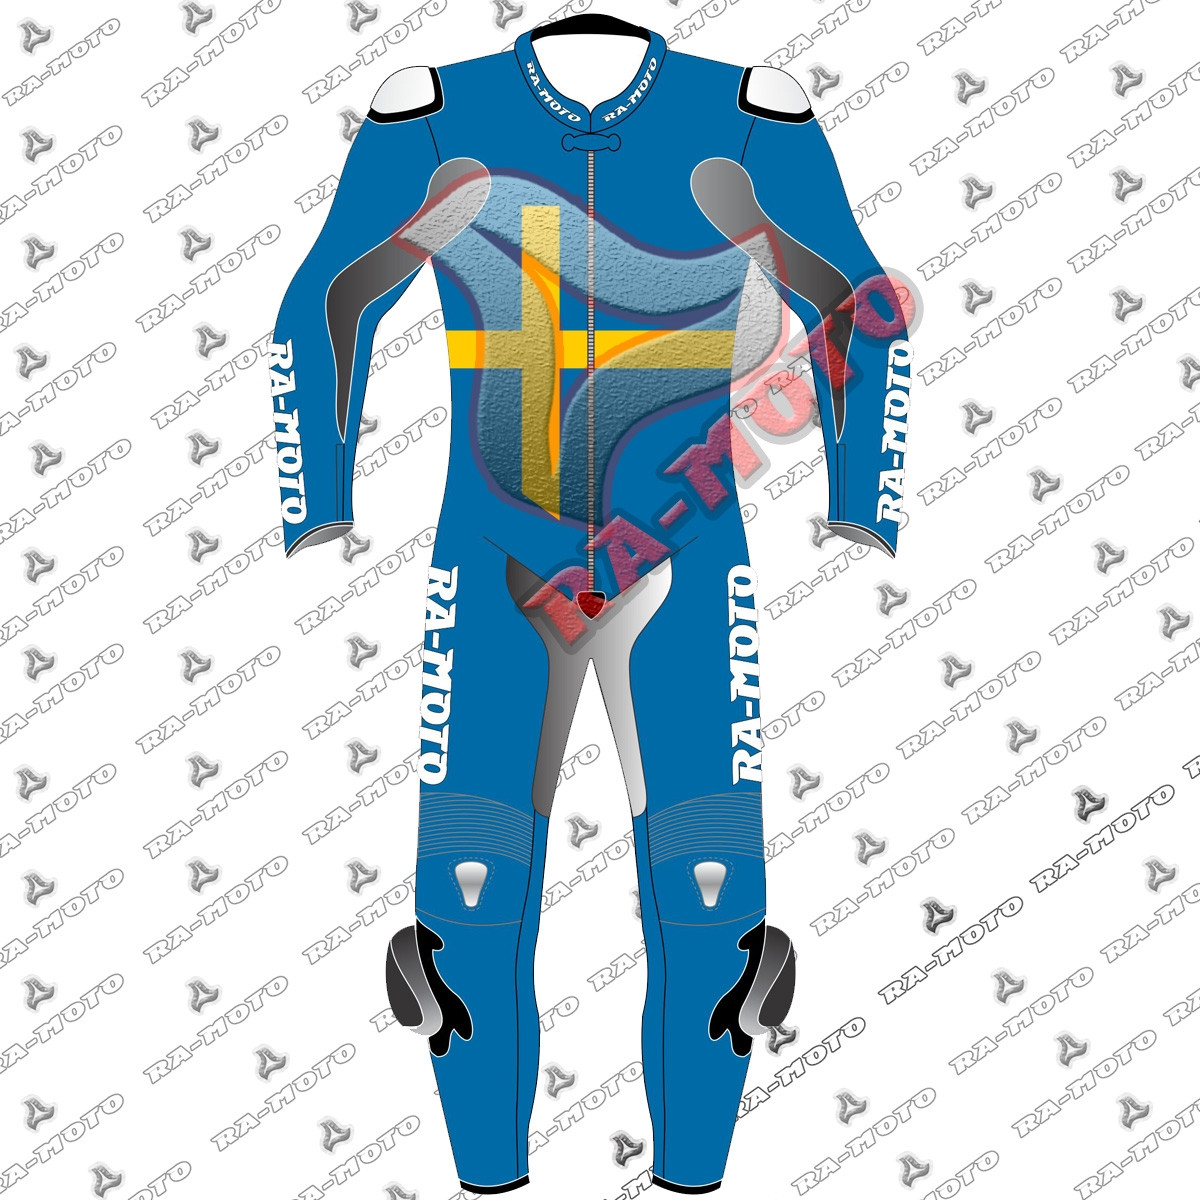 RA-15249 sweden flag moterbike leather suit 2019